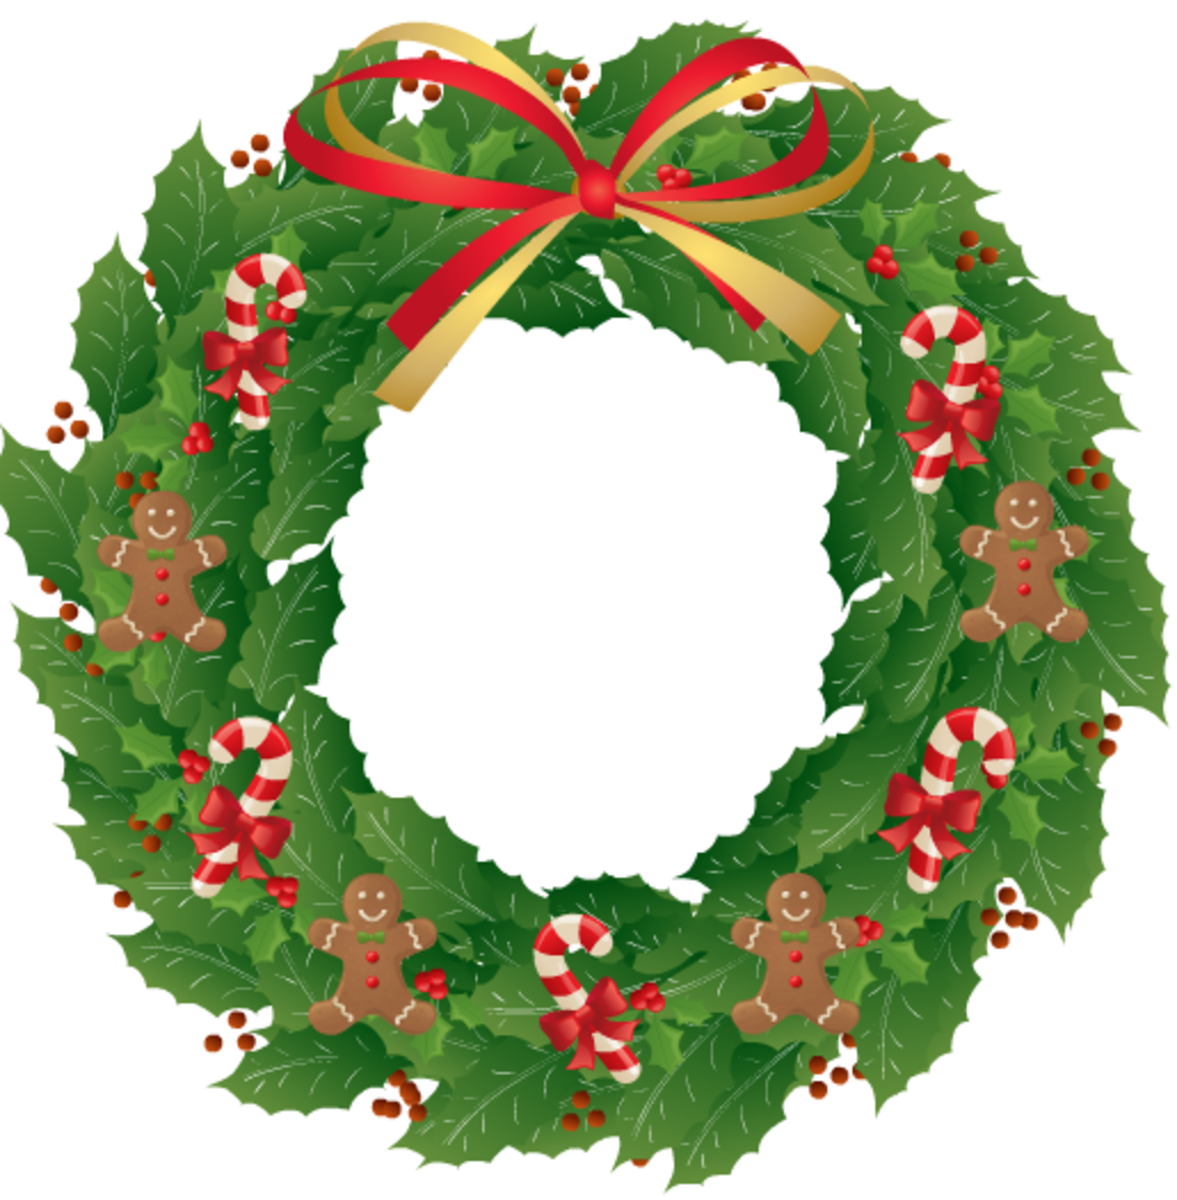 Christmas images: sweet treats holly wreath